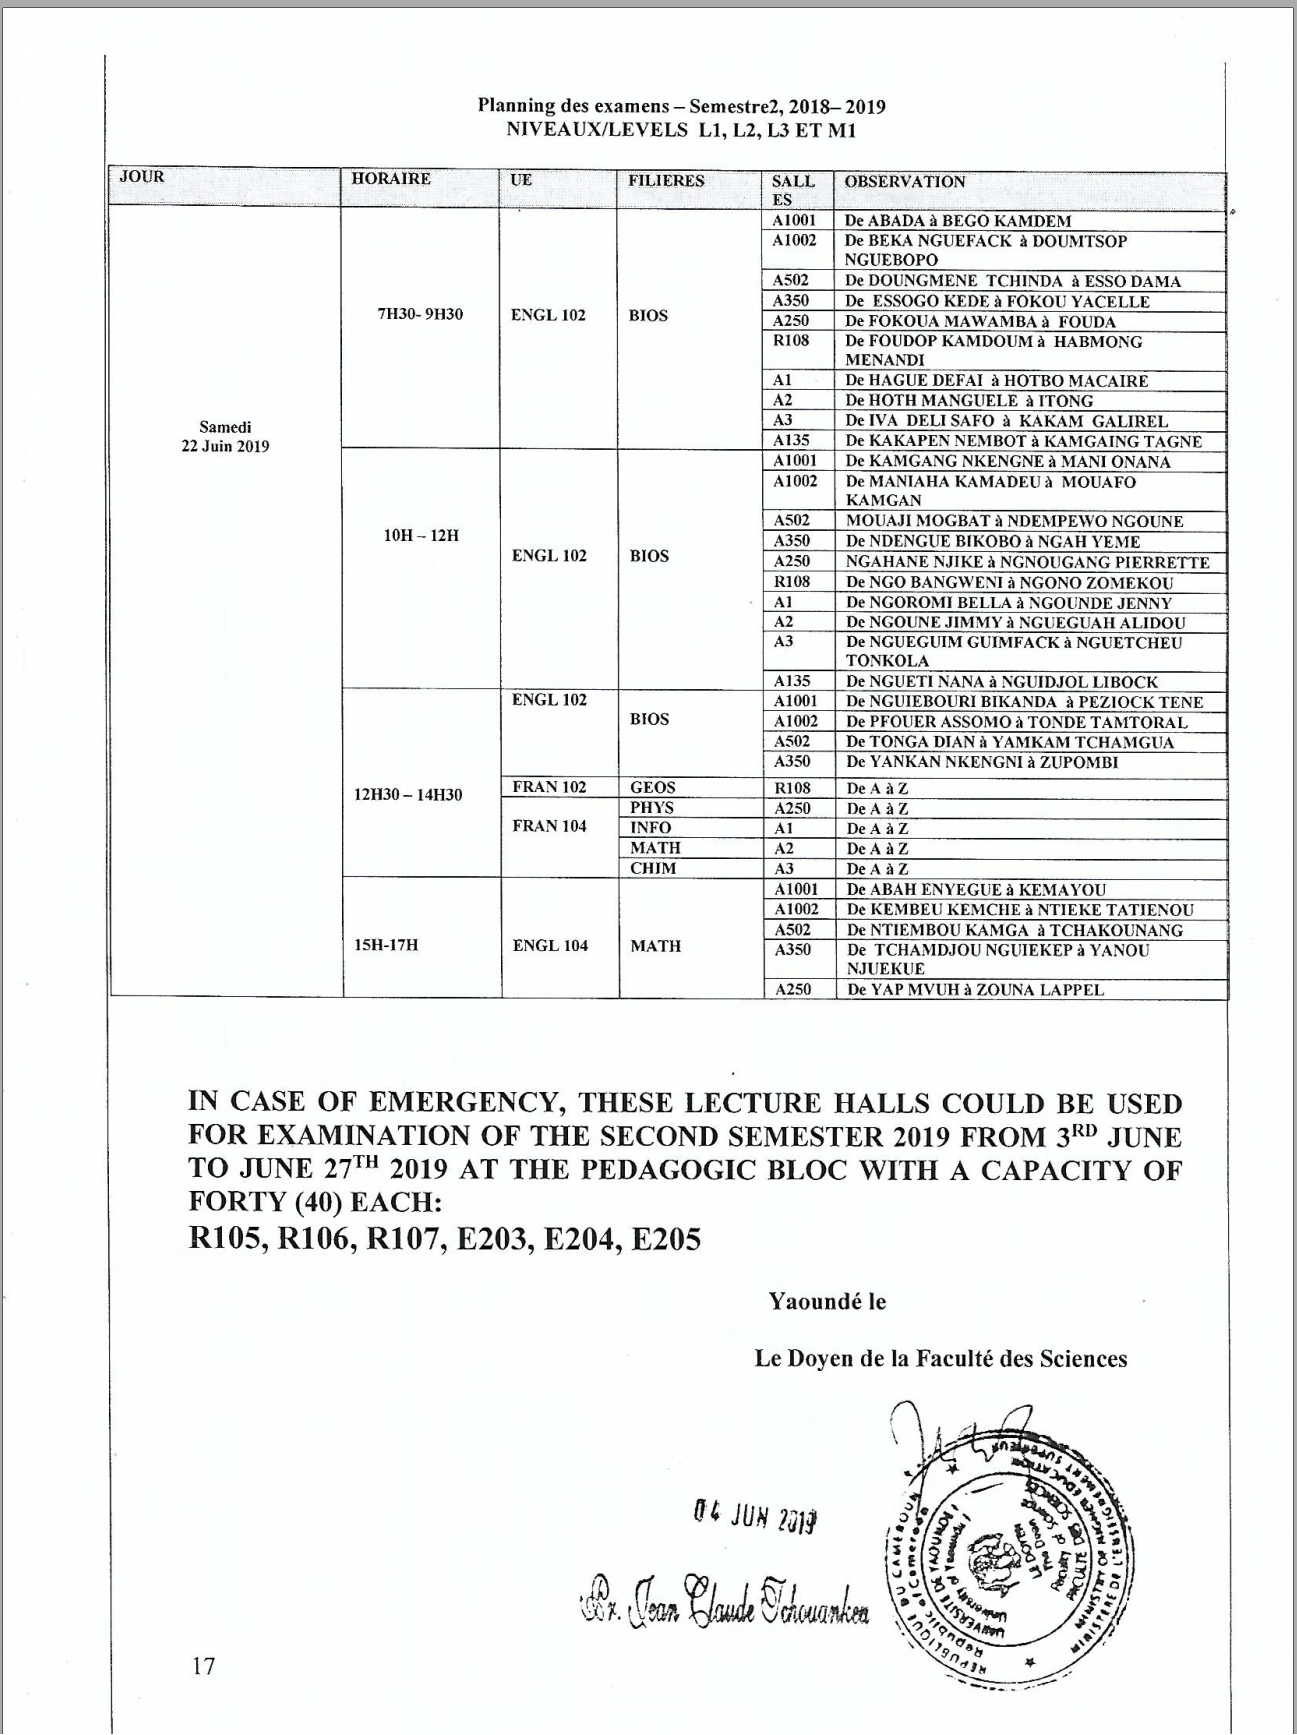 Examination Schedule of the Faculty of Science Second Semester 2018-2019